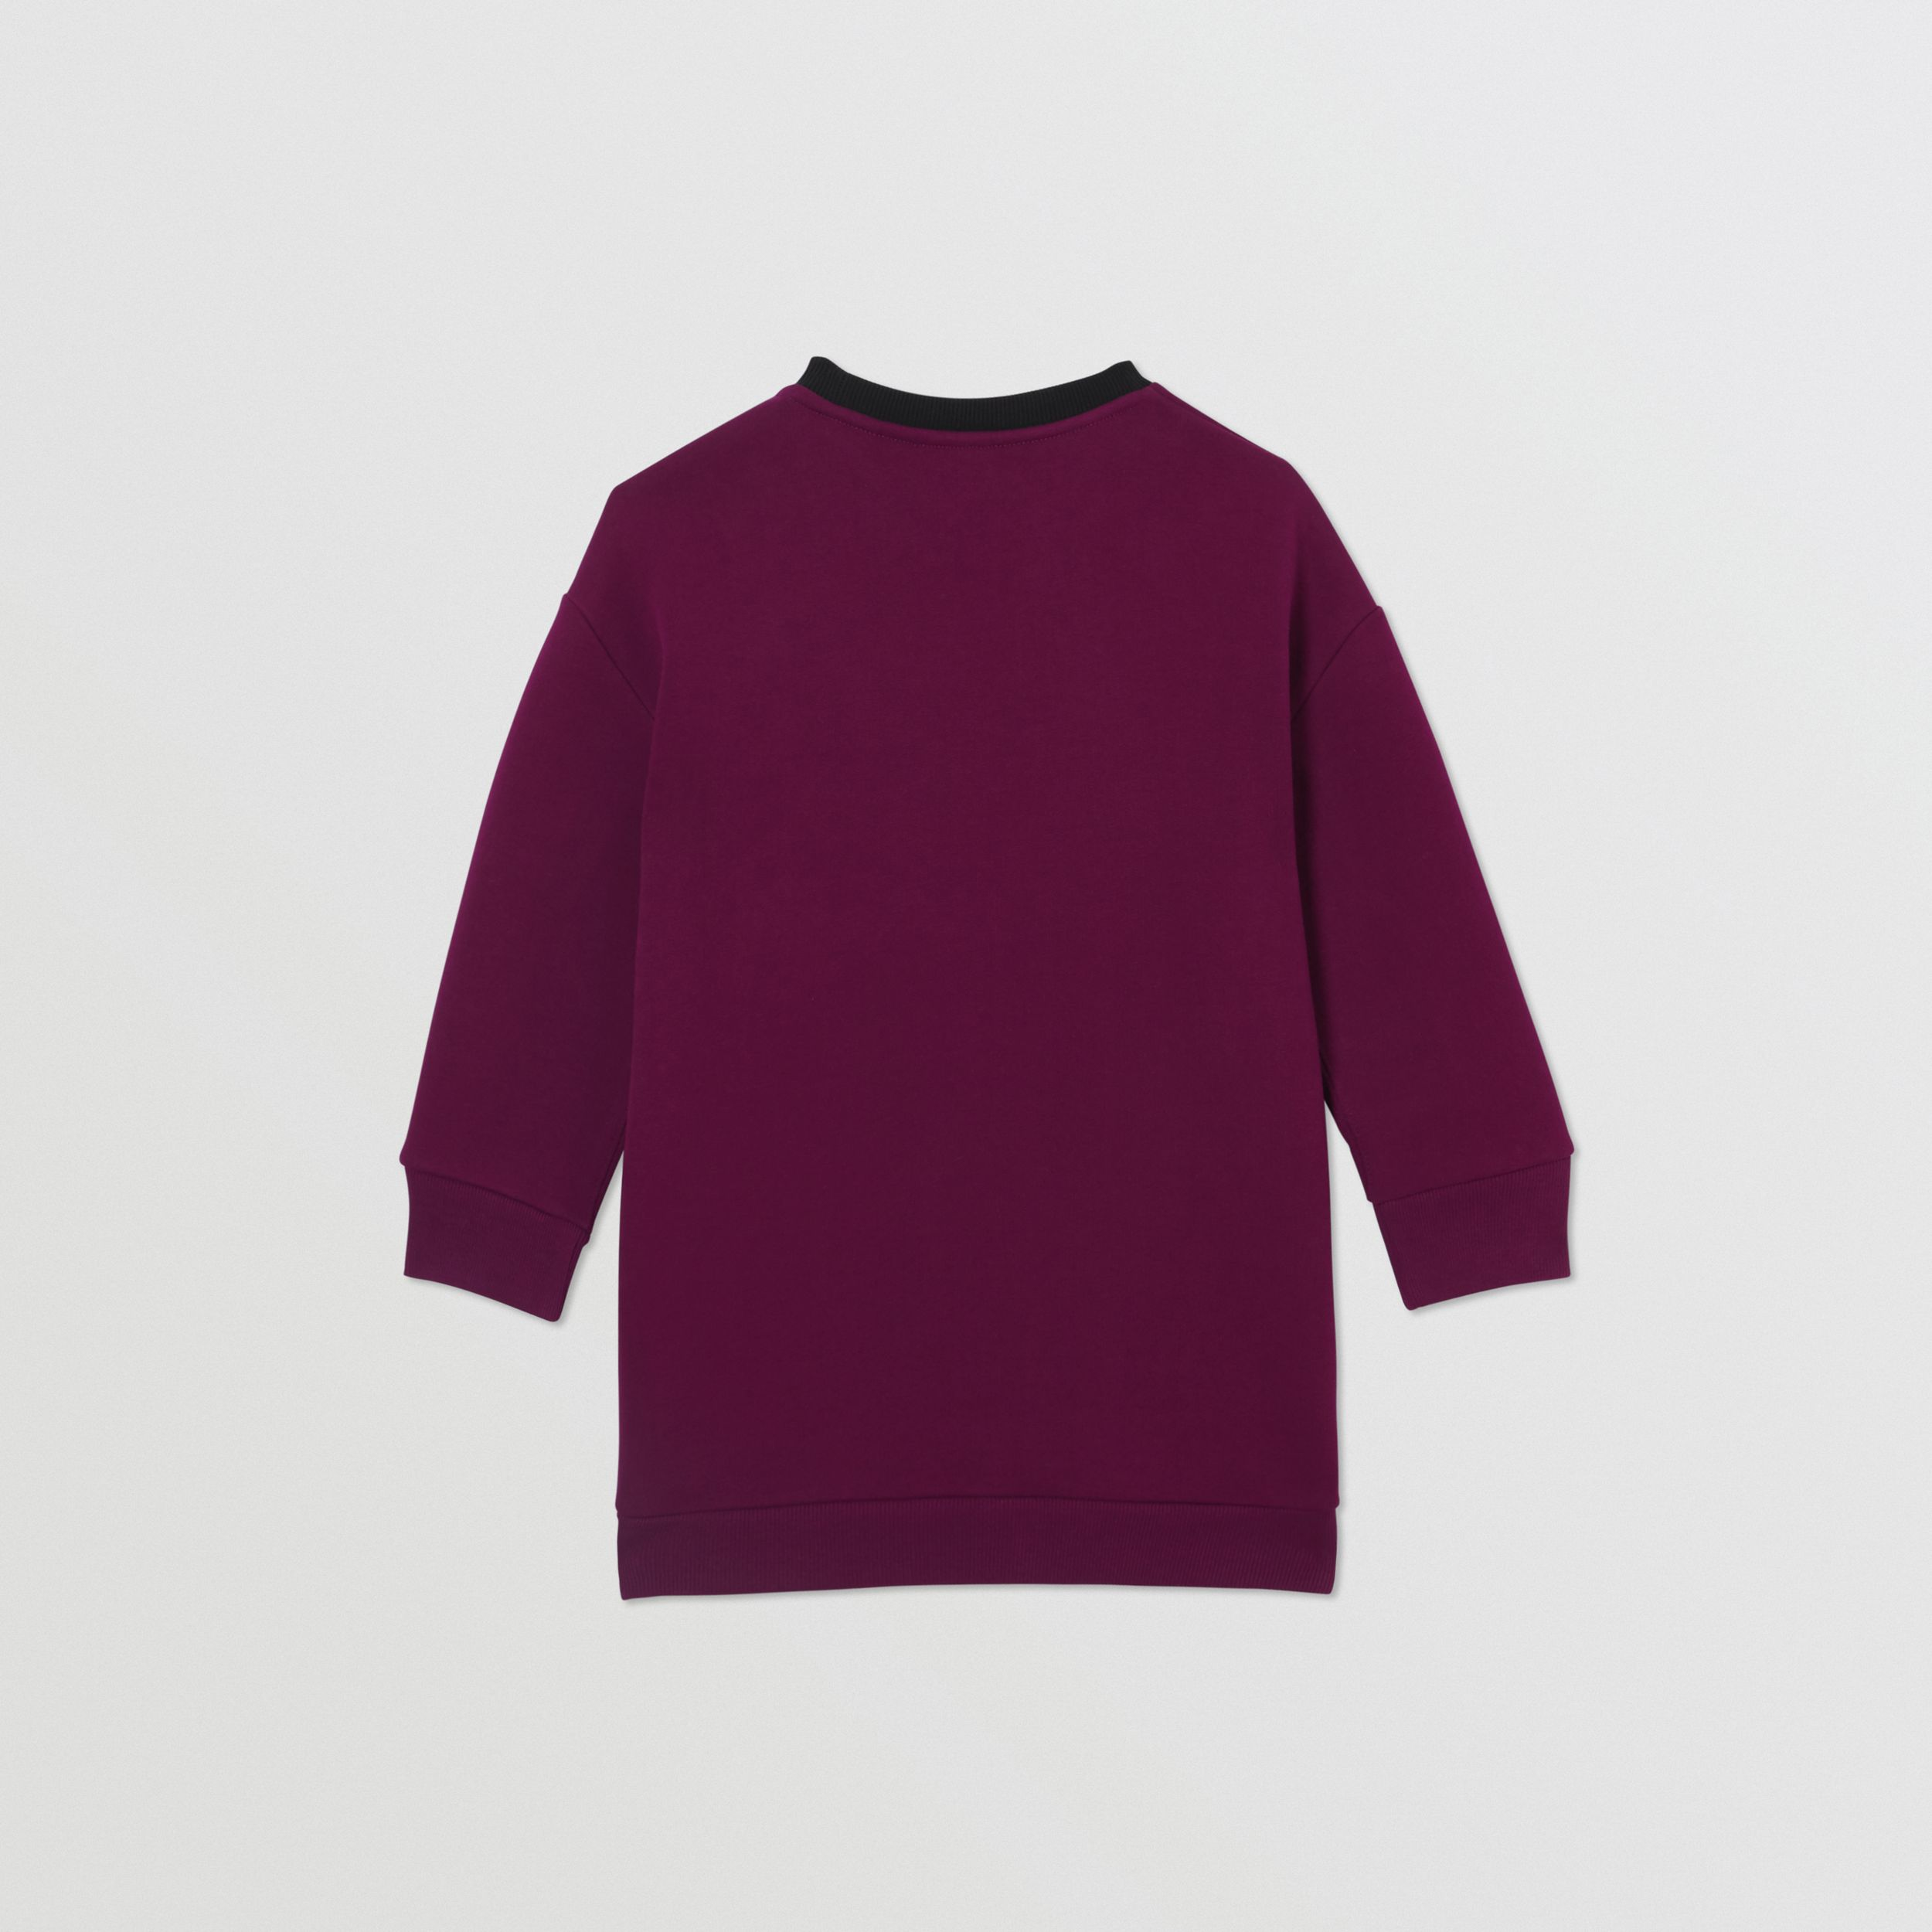 Logo Print Jersey Sweater Dress in Burgundy | Burberry United States - 4